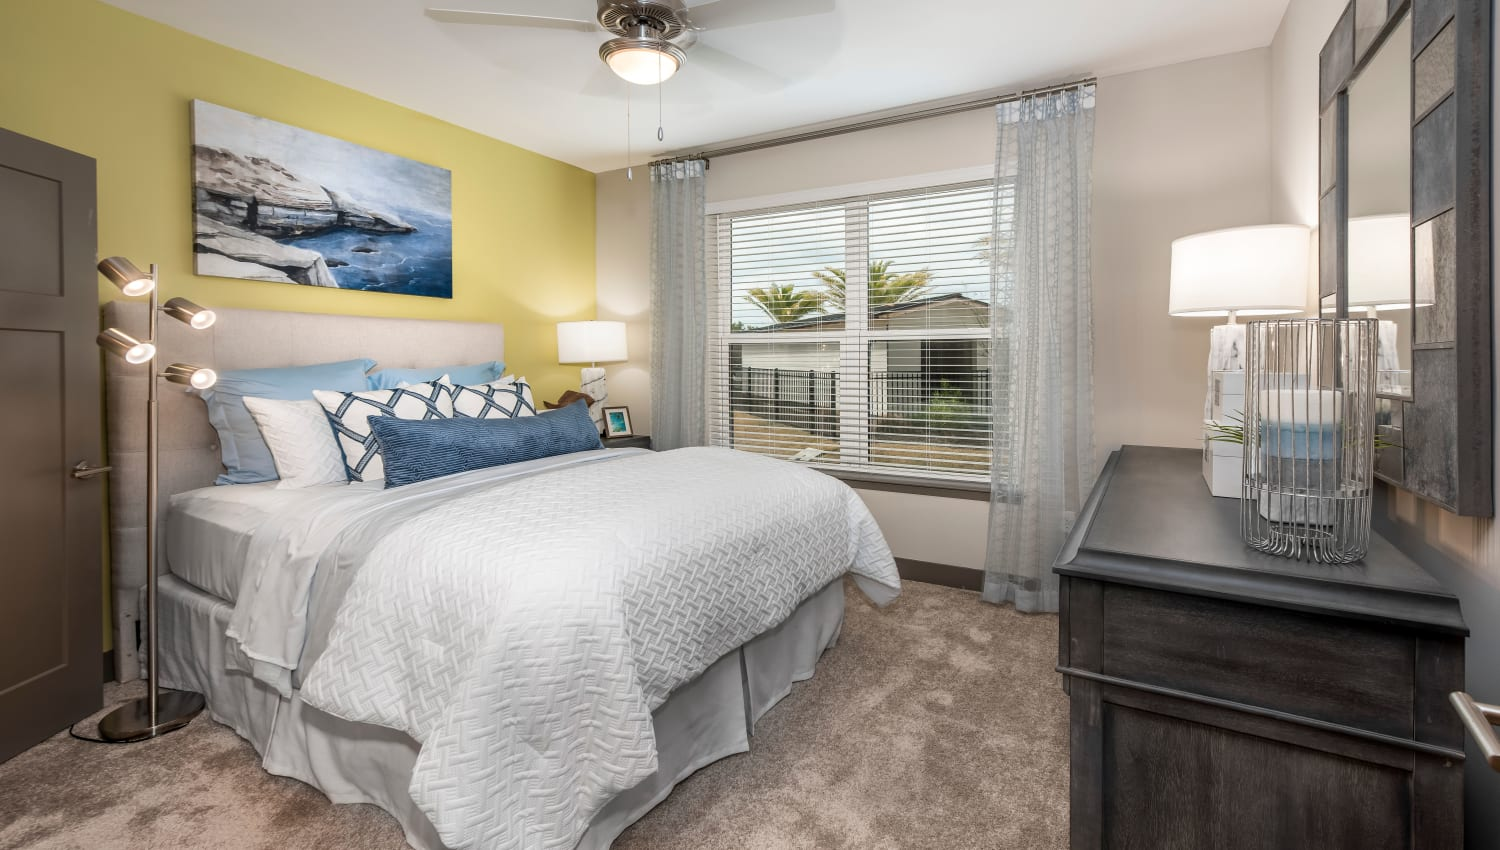 A large bedroom with plush carpeting at Olympus Emerald Coast in Destin, Florida